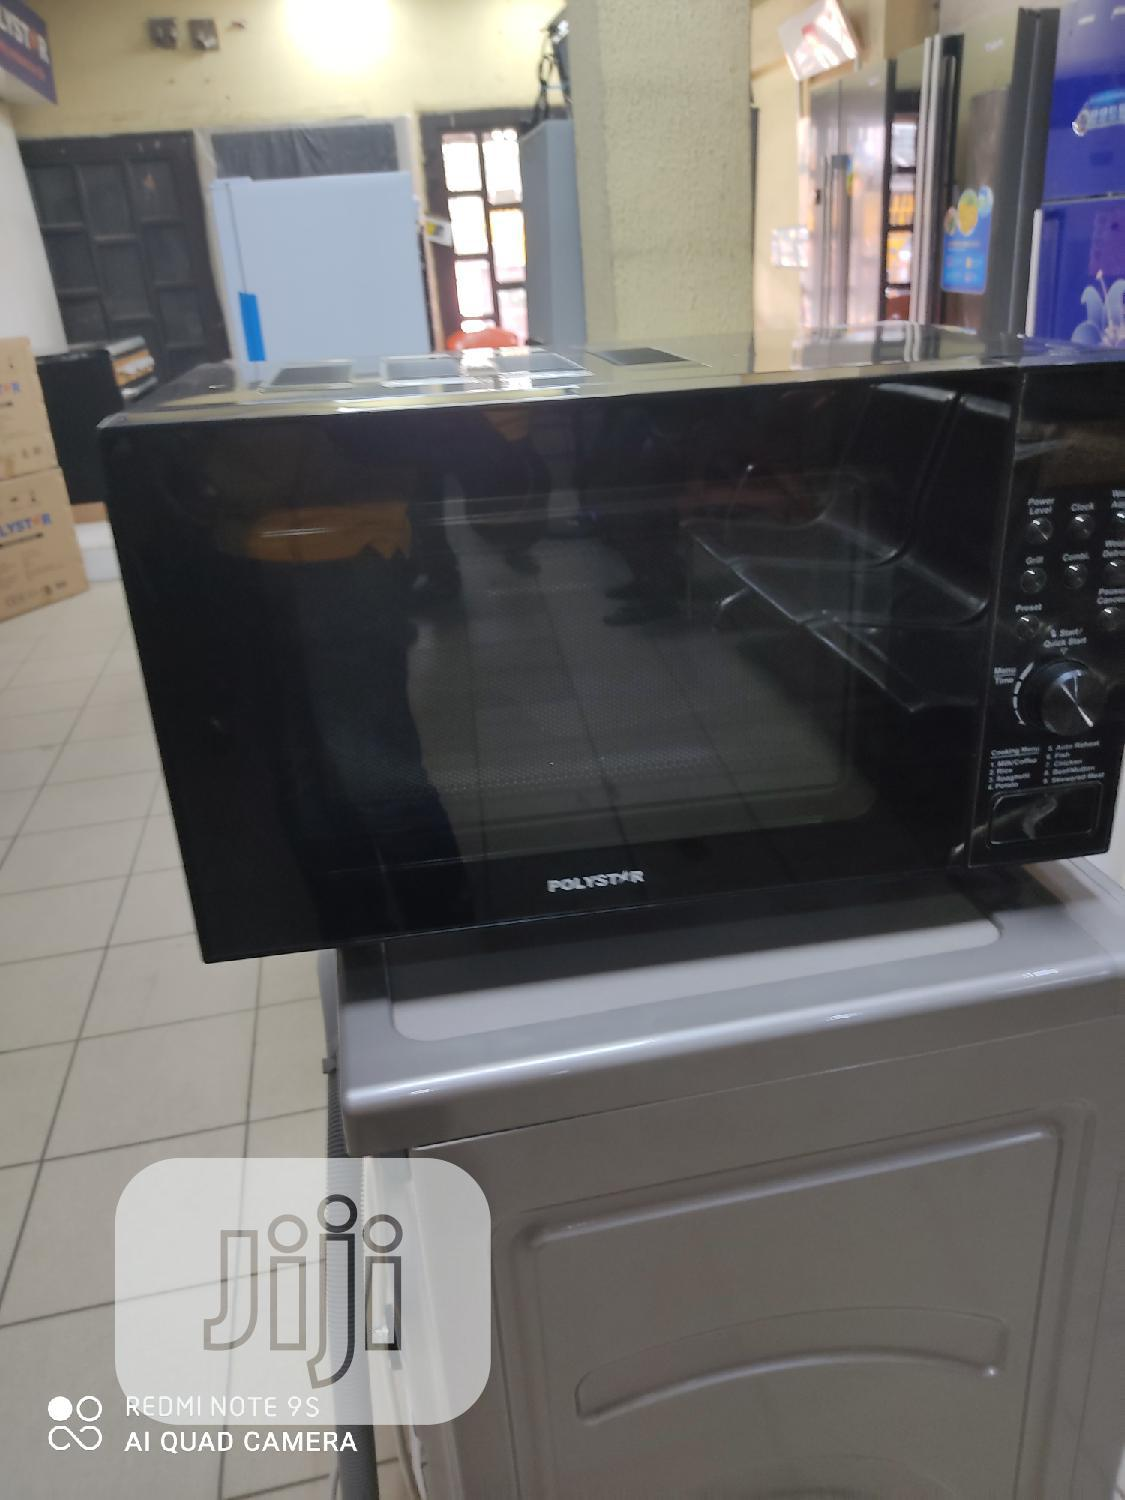 Polystar 20L Microwave Built in Cabinet (Ignition) 2 Years